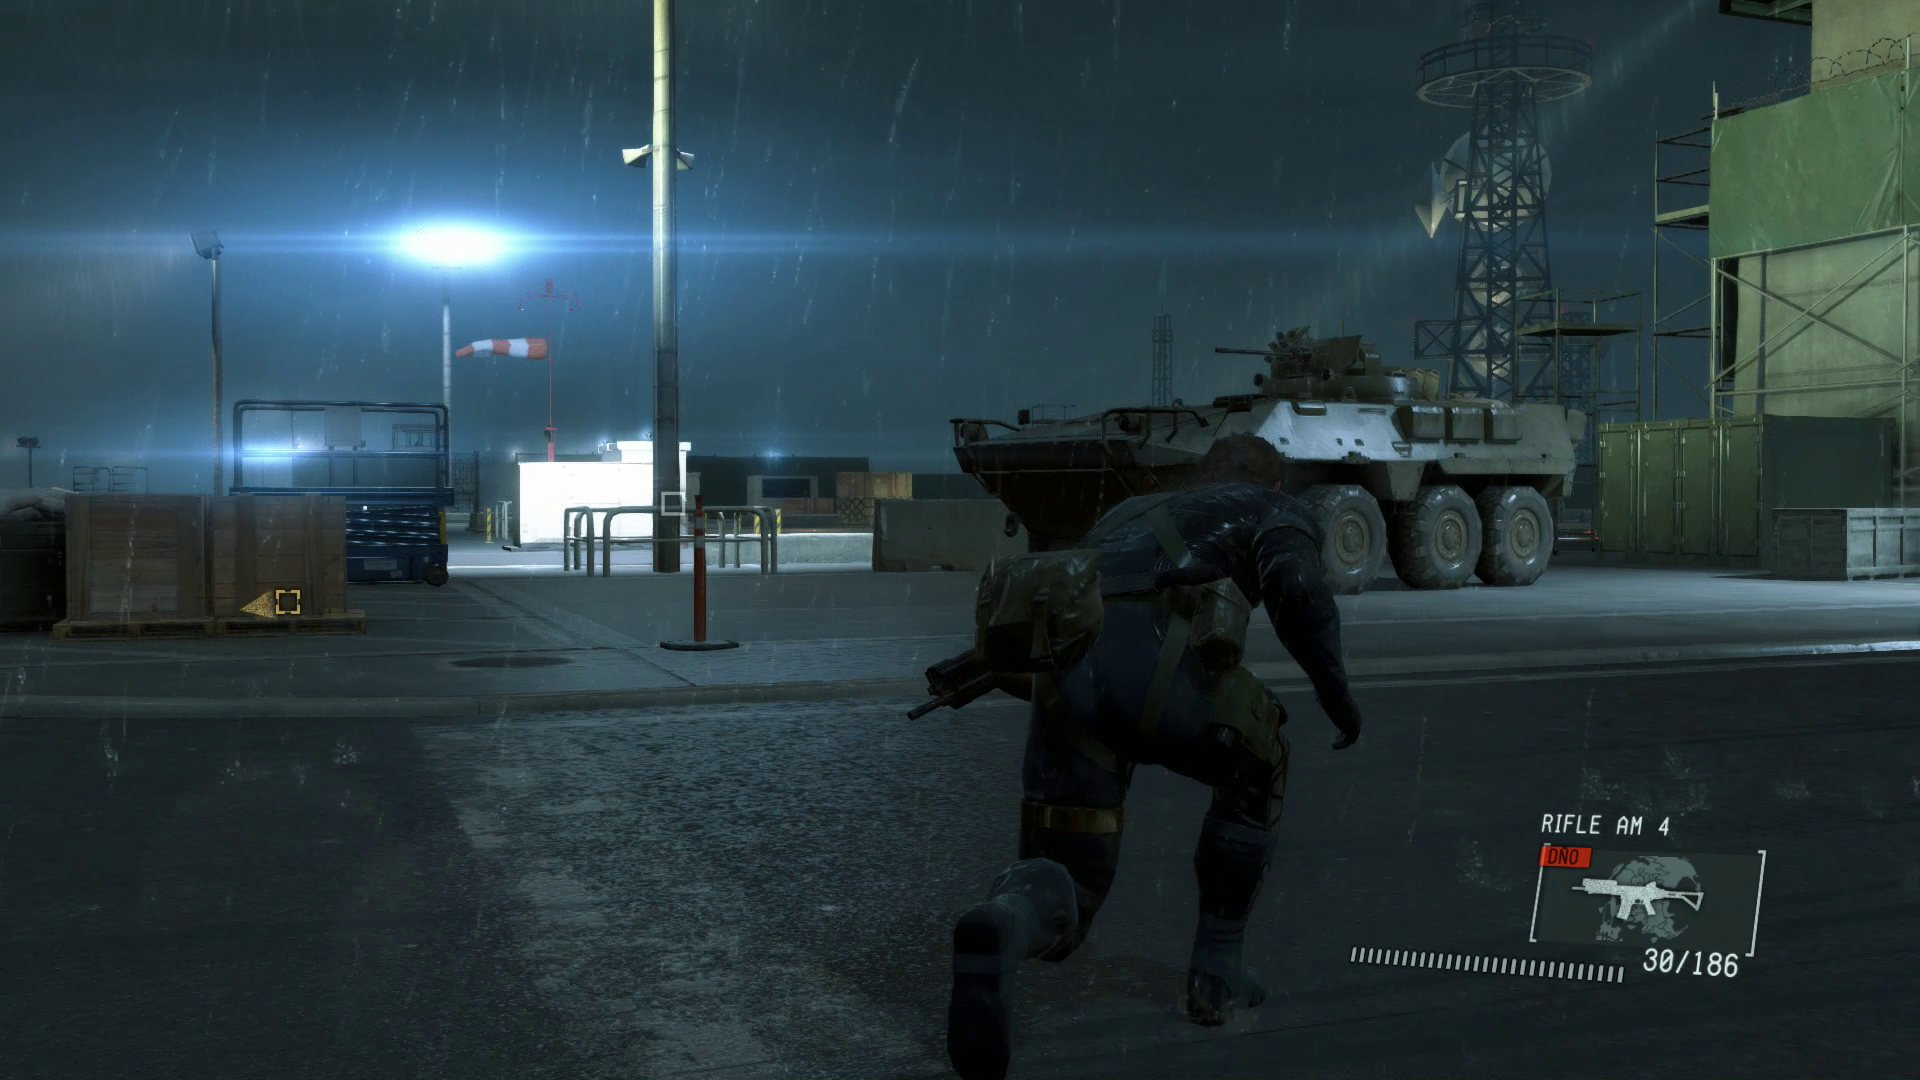 metal gear solid essay Posts about metal gear solid v written by joshua tong.